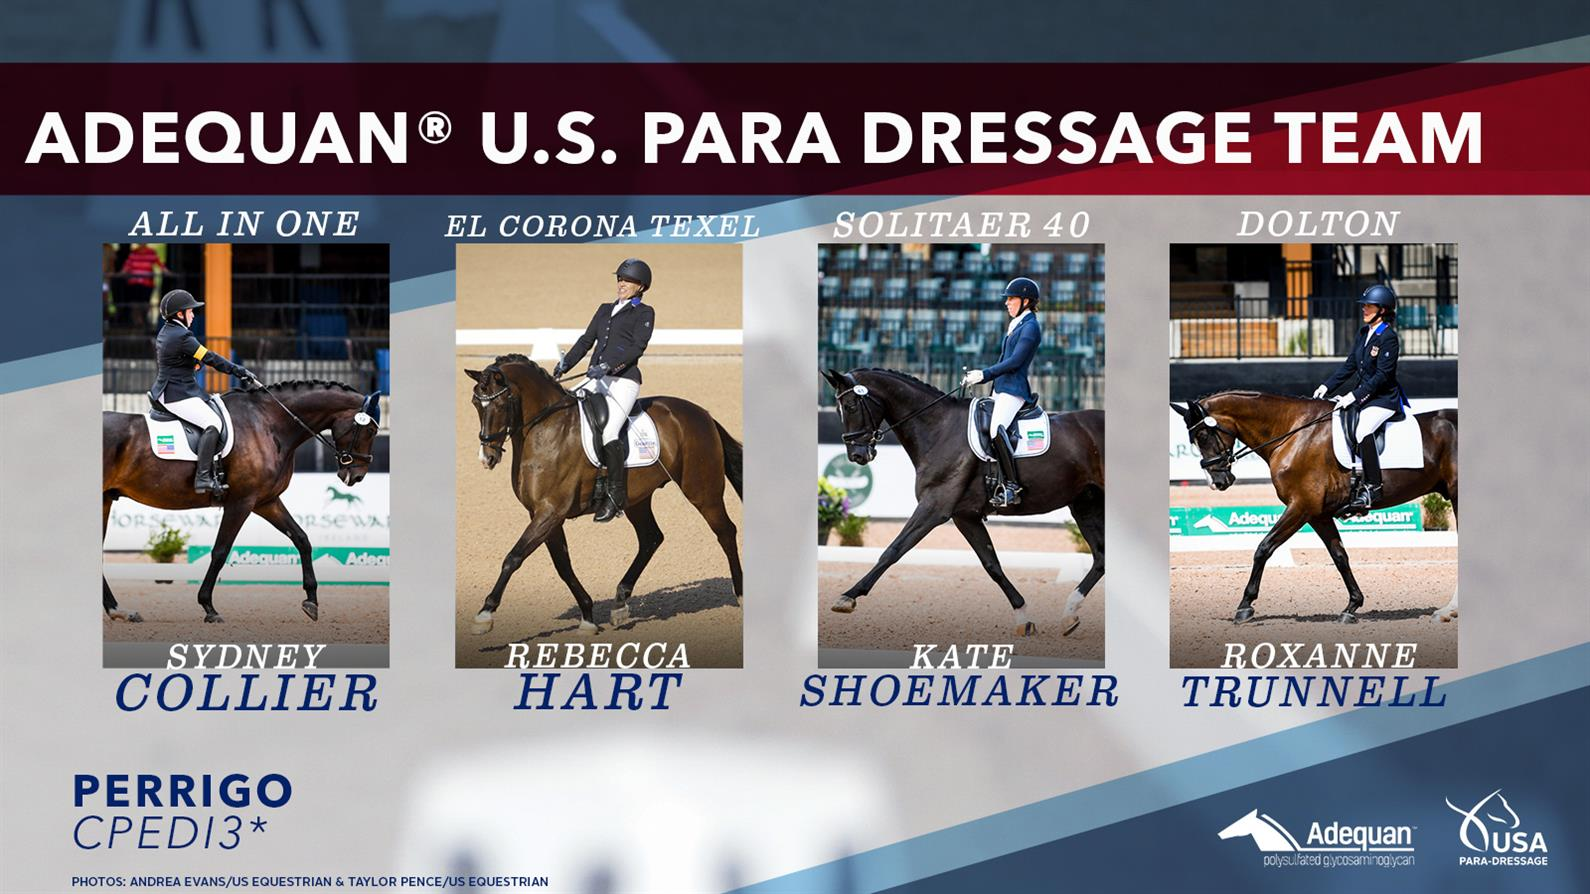 Team roster for the Para Dressage team at 2021 Tryon Summer Dressage CPEDI3*